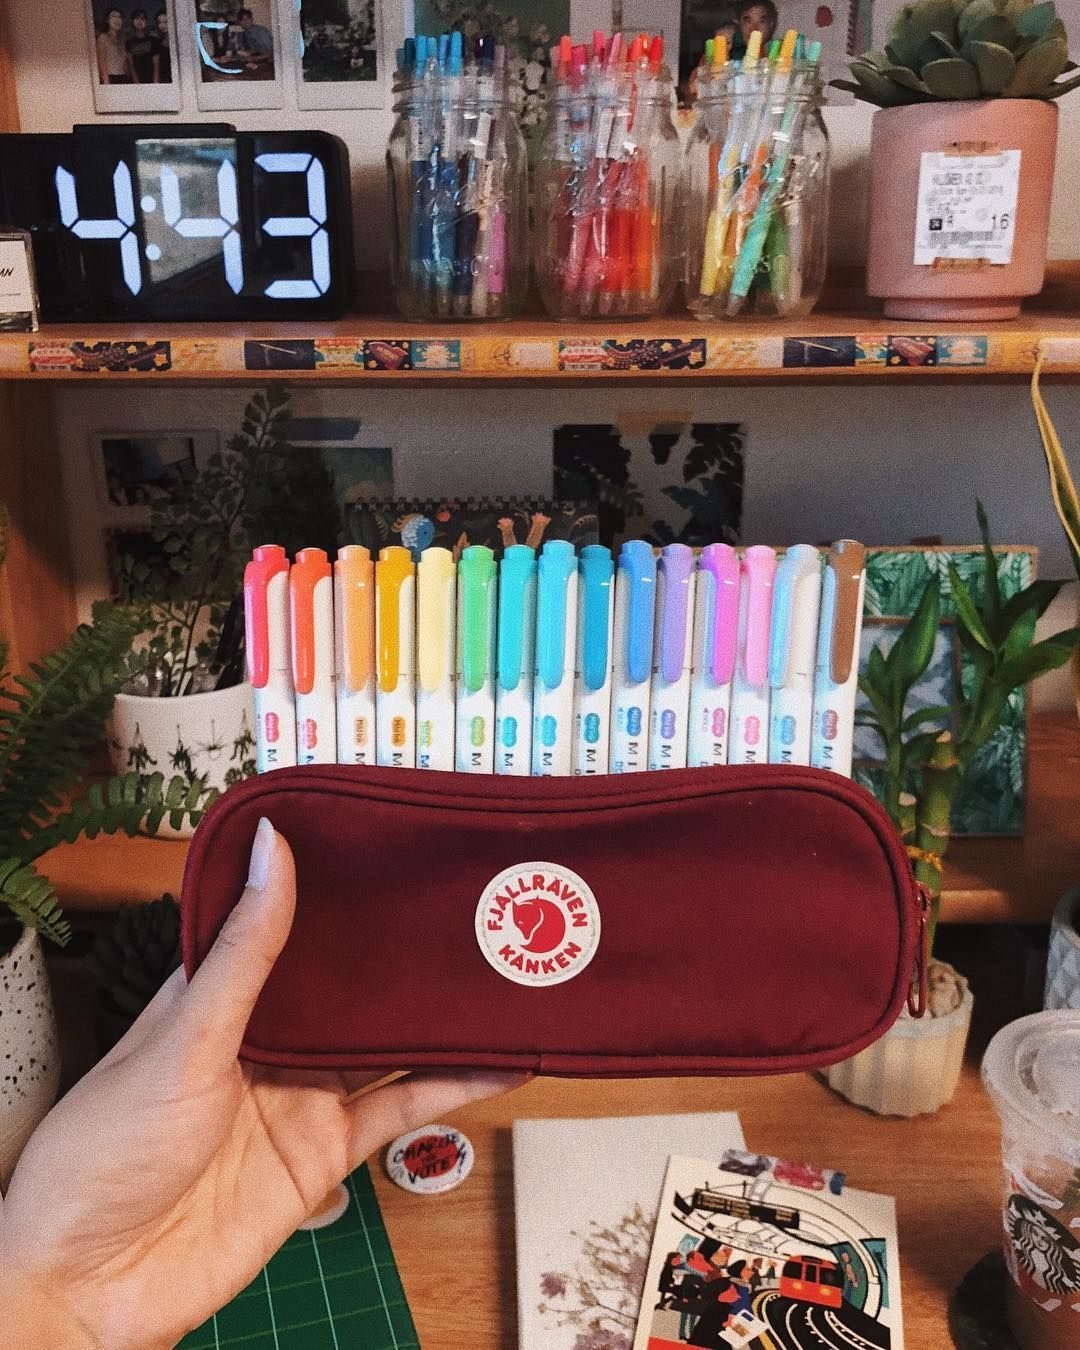 Brian qian on instagram whats in my pencil case do you